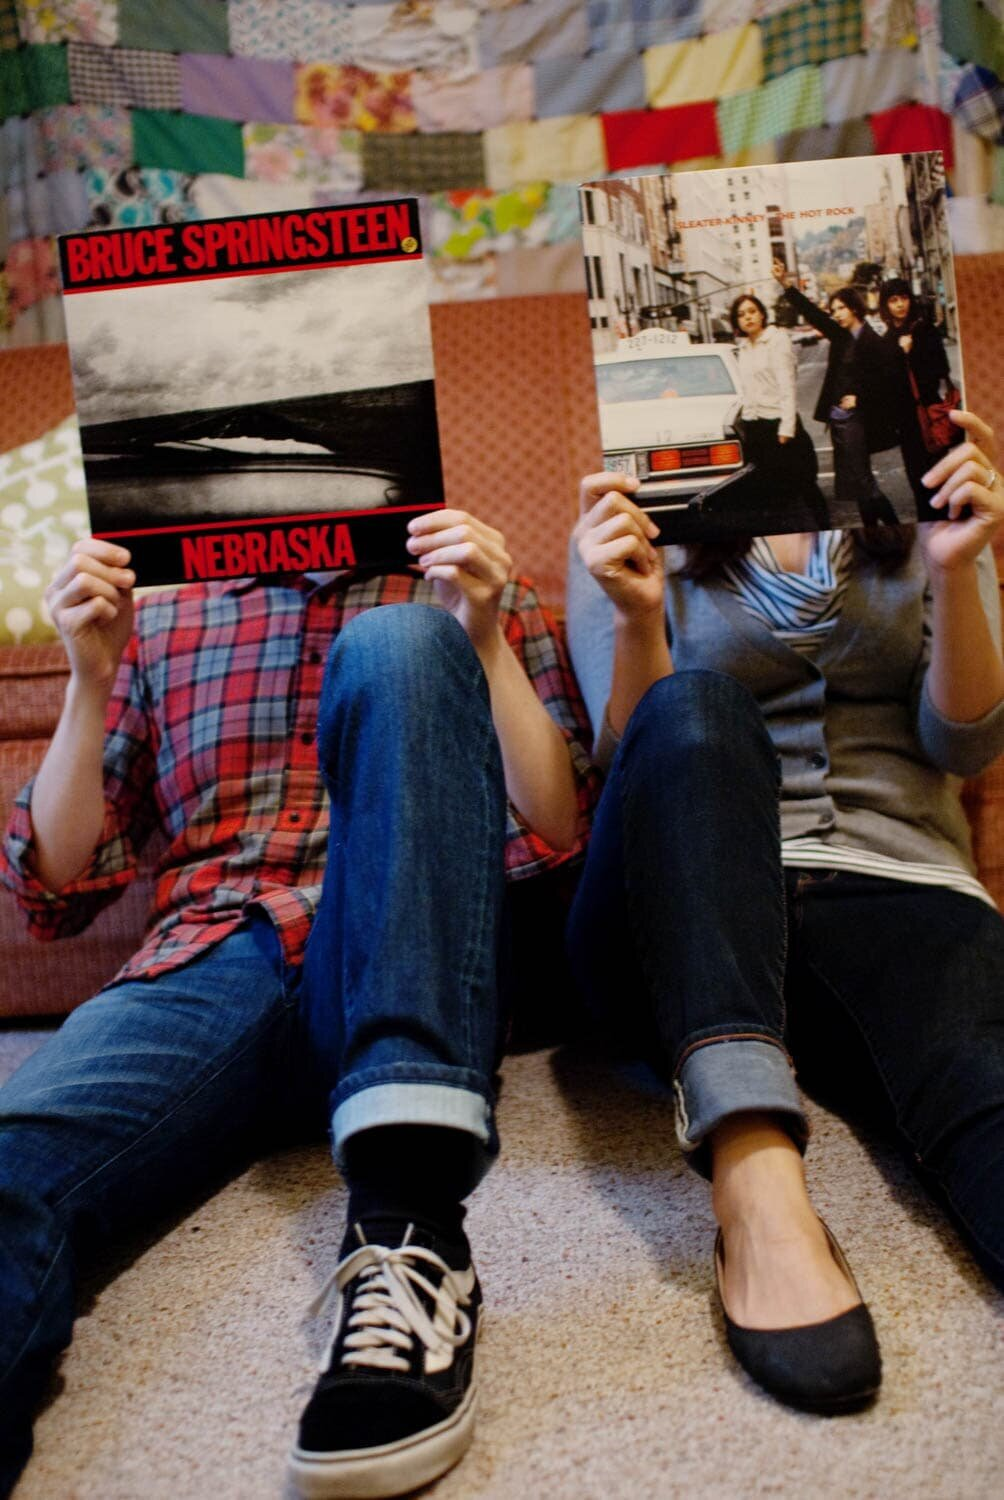 a couple cover their faces with a bruce springsteen and sleater kinney record cover